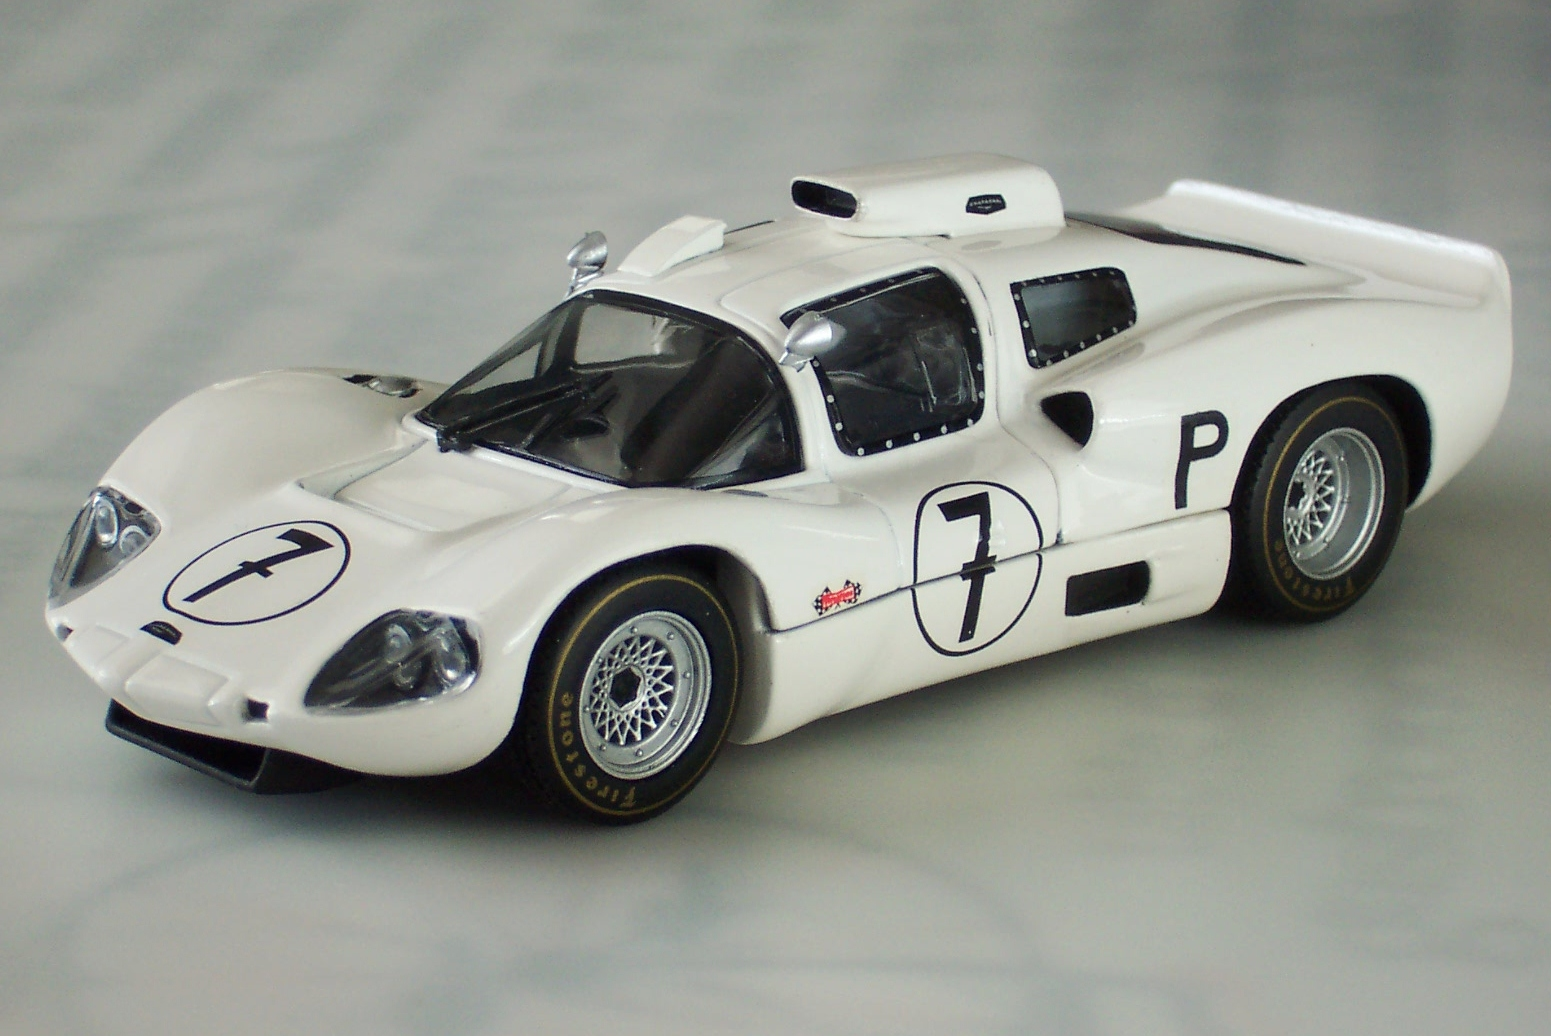 Chaparral 2D Chevrolet group 6 (1966) - Racing Cars